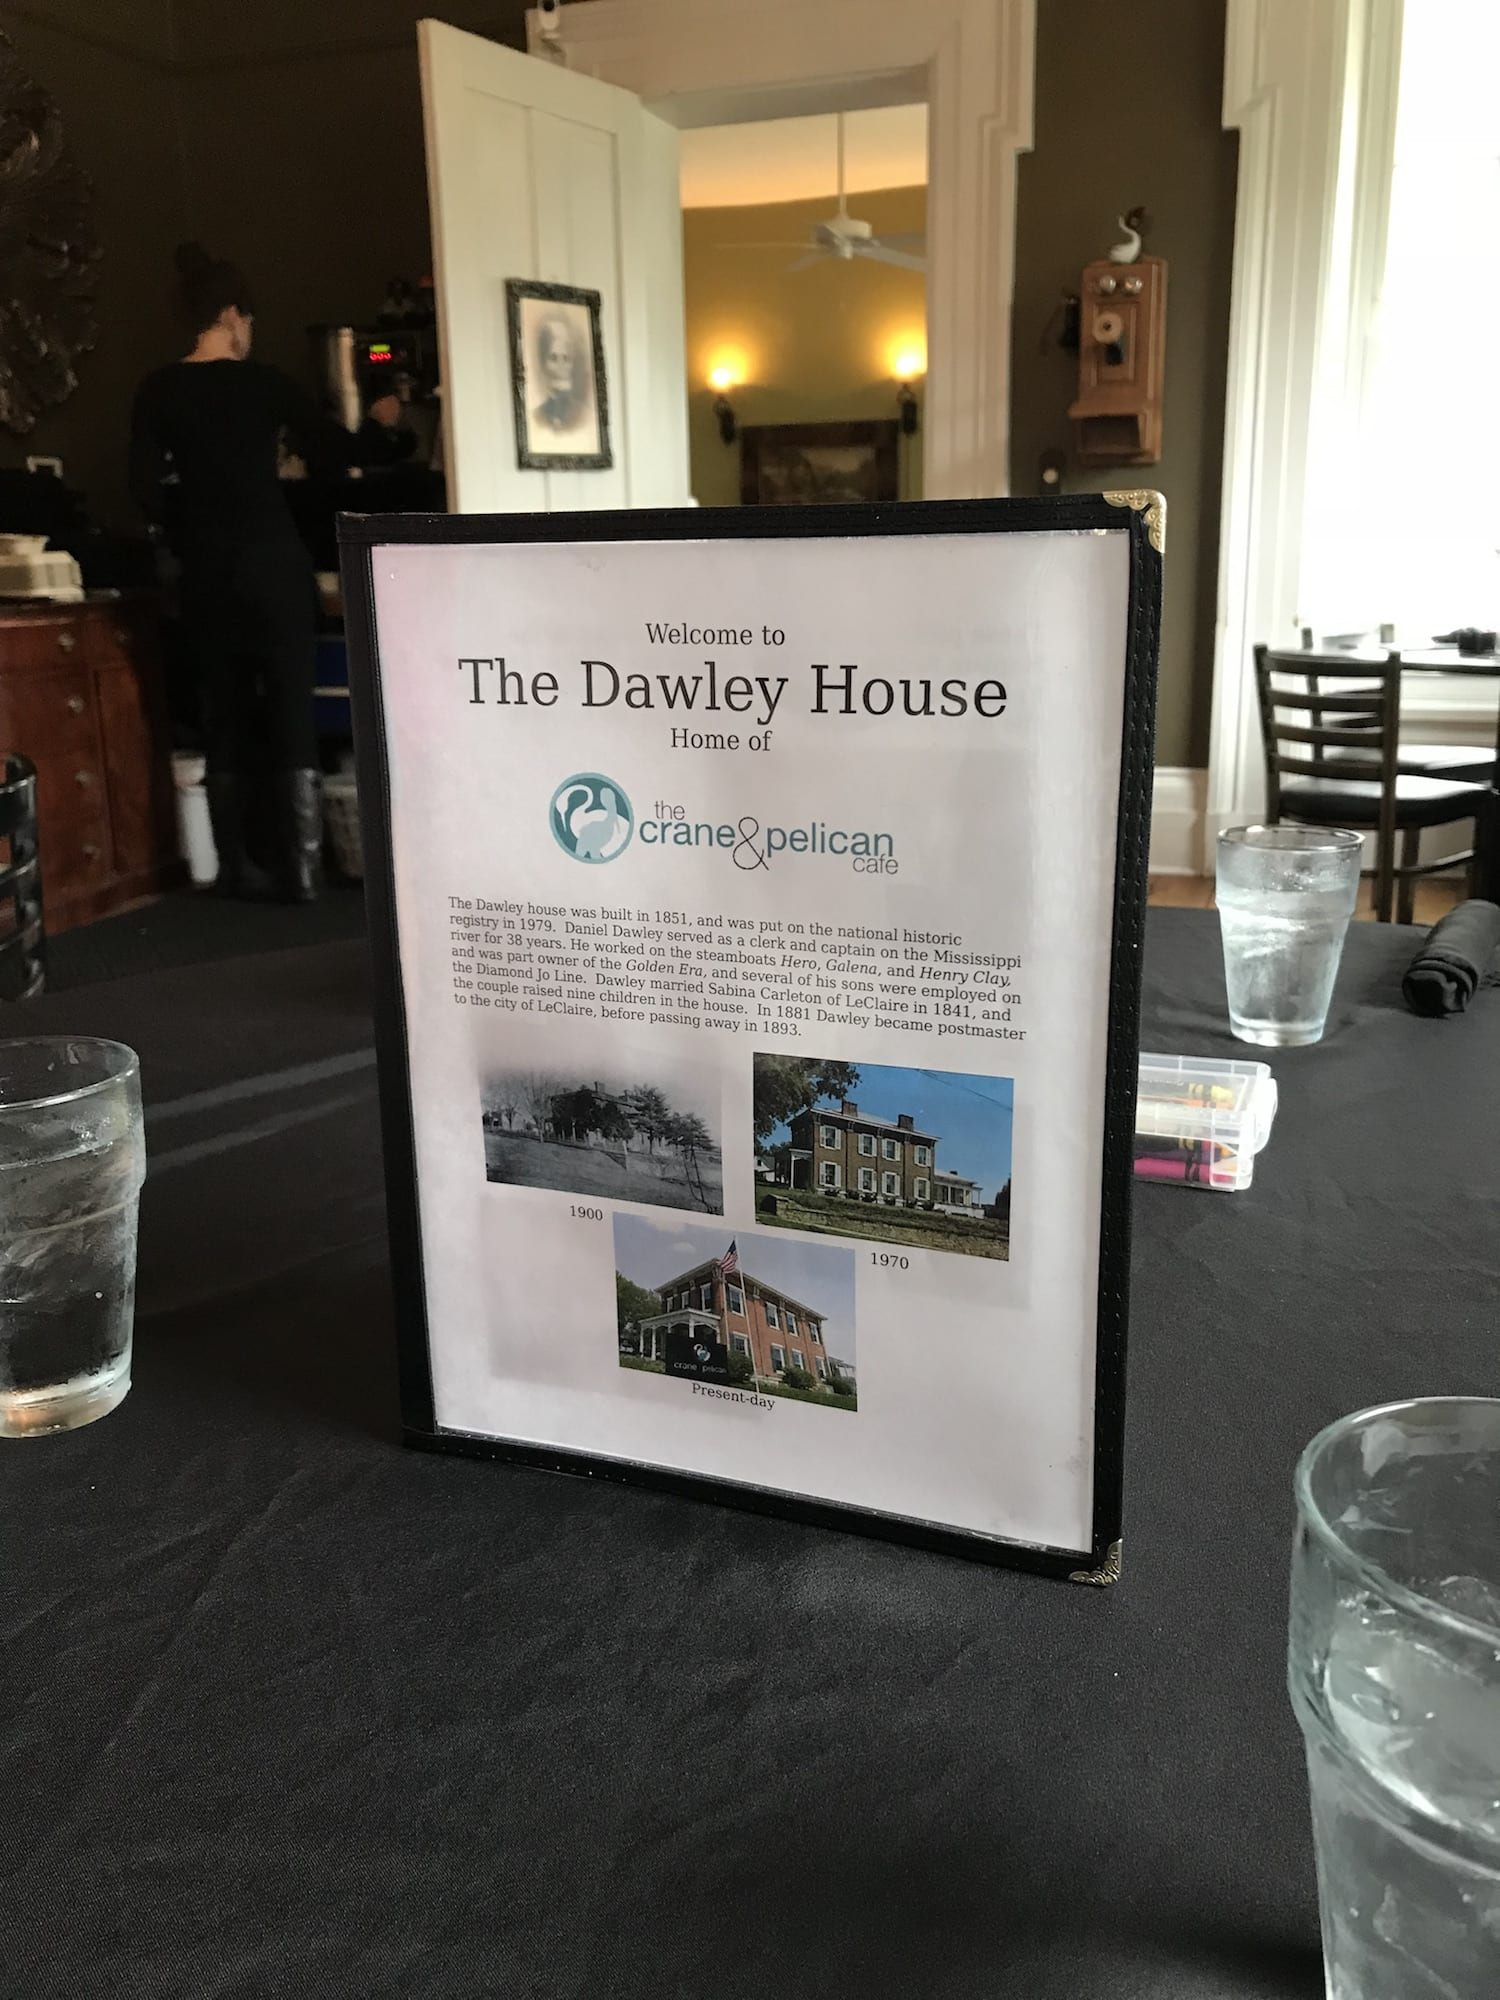 the Dawley House - Home of the Crane & Pelican Cafe